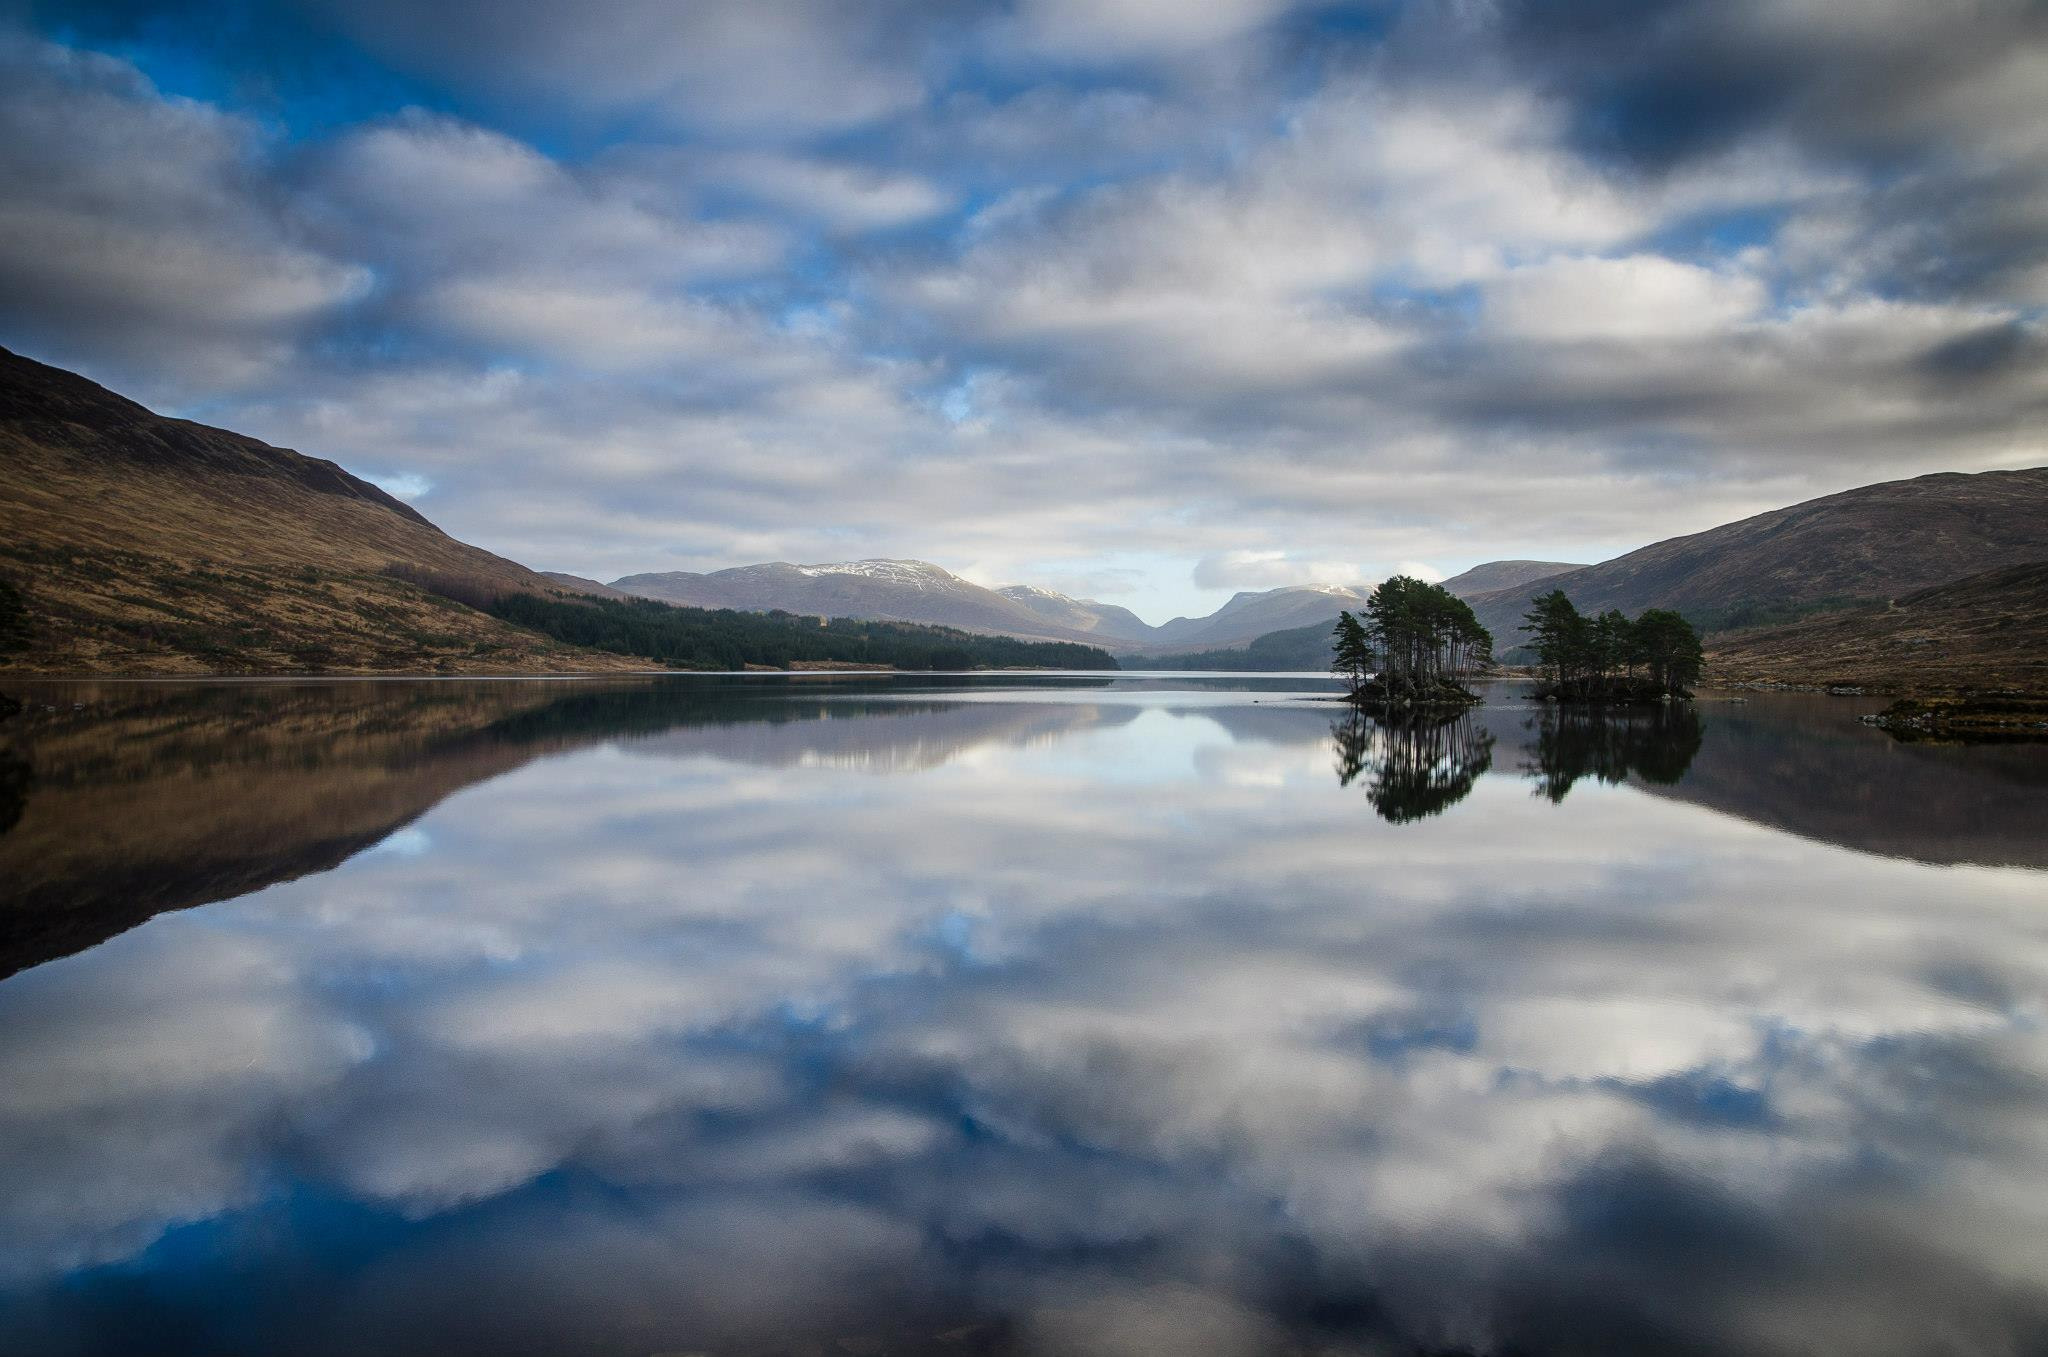 Photograph Loch Ossian II by James Barlow on 500px